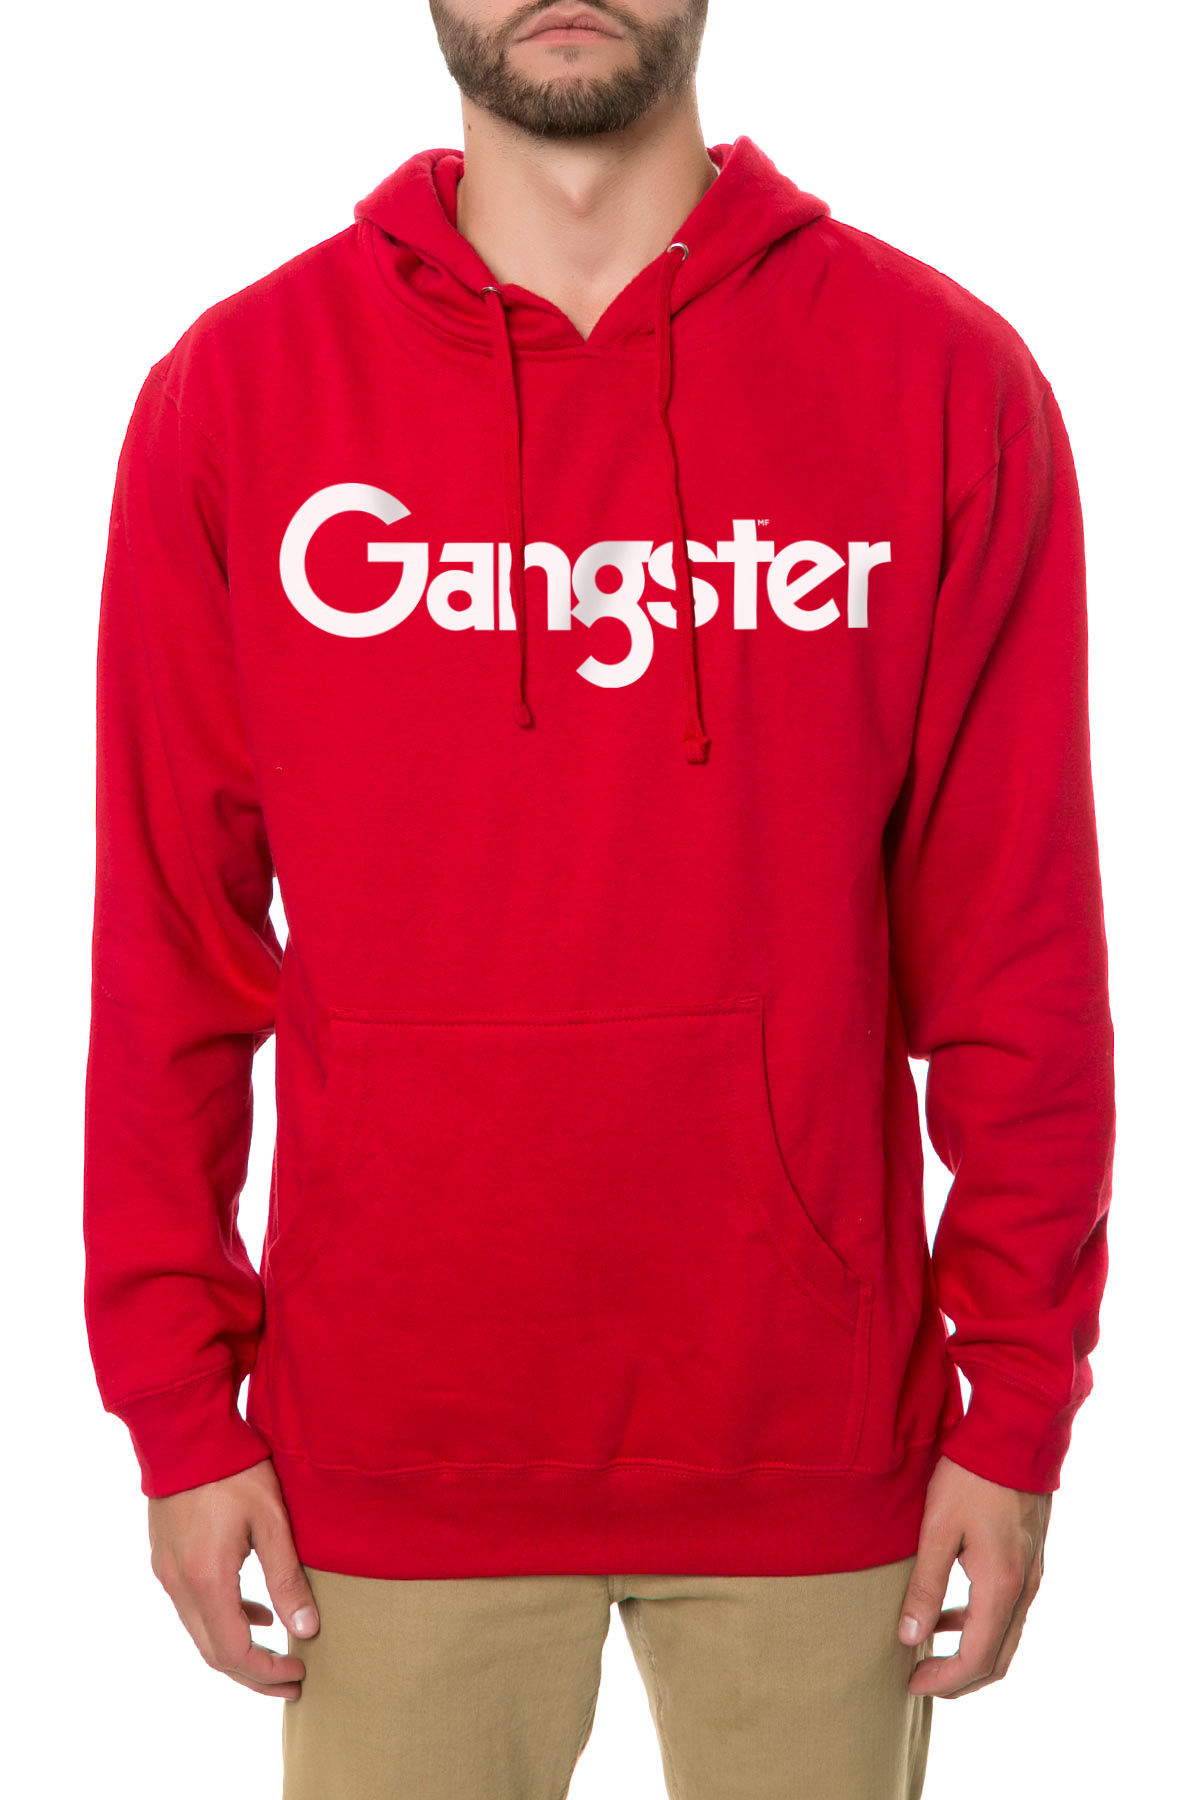 Image of The Gangster MF Hoodie in Red